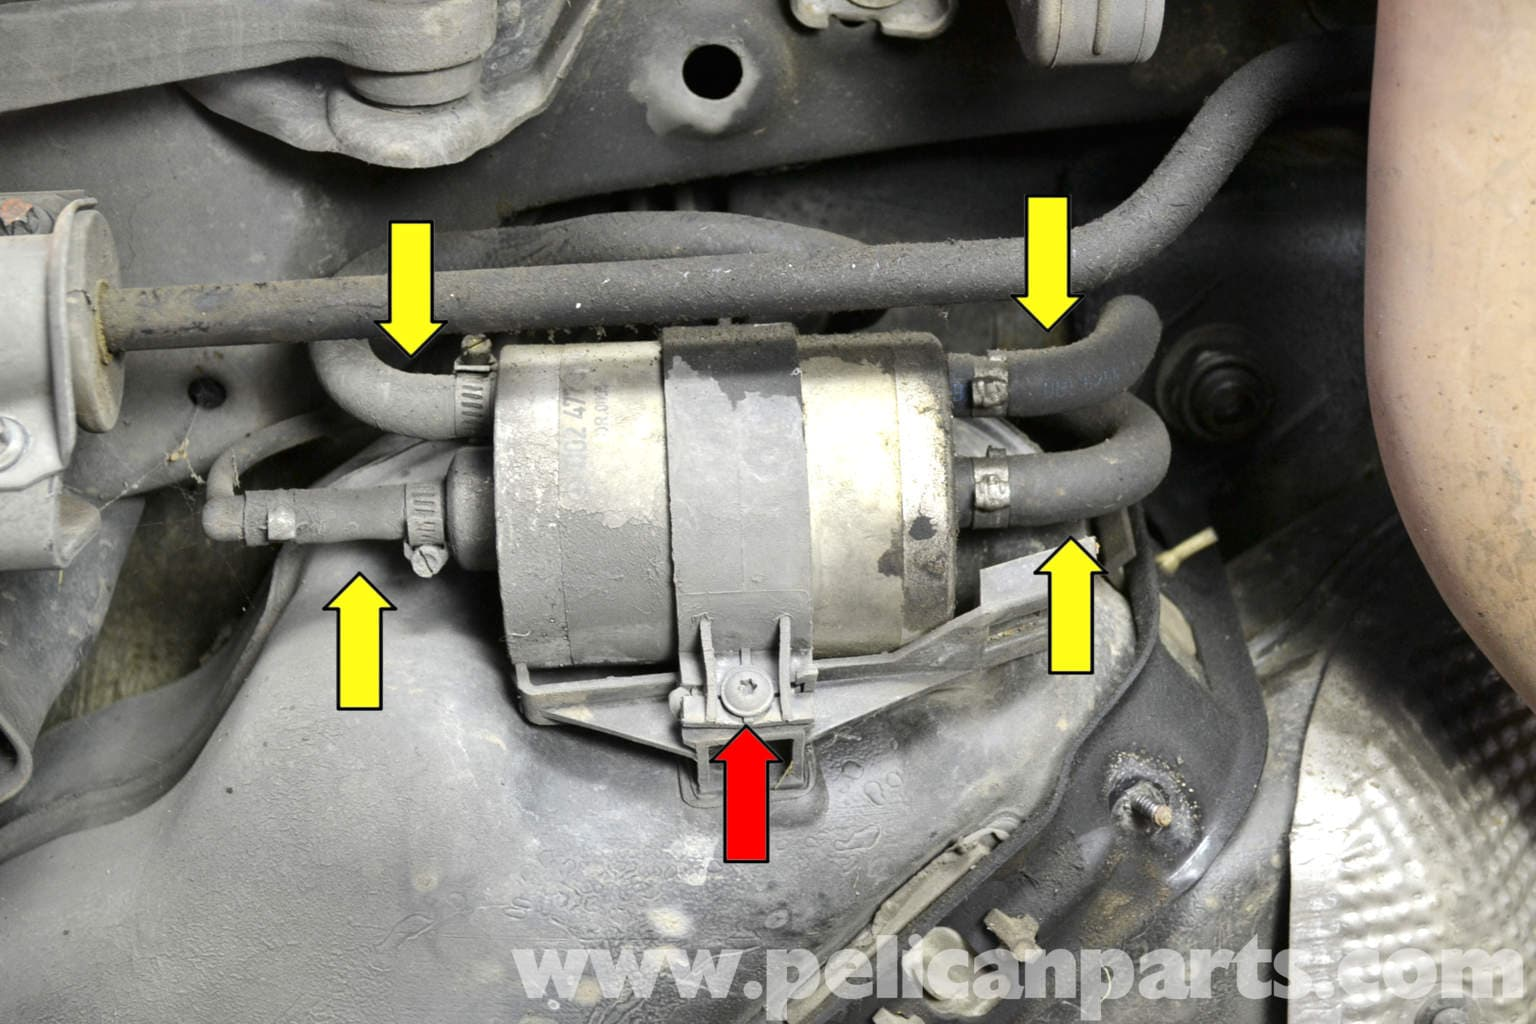 hight resolution of 2002 ml320 fuel filter wiring diagram centremercedes benz w203 fuel filter replacement 2001 2007